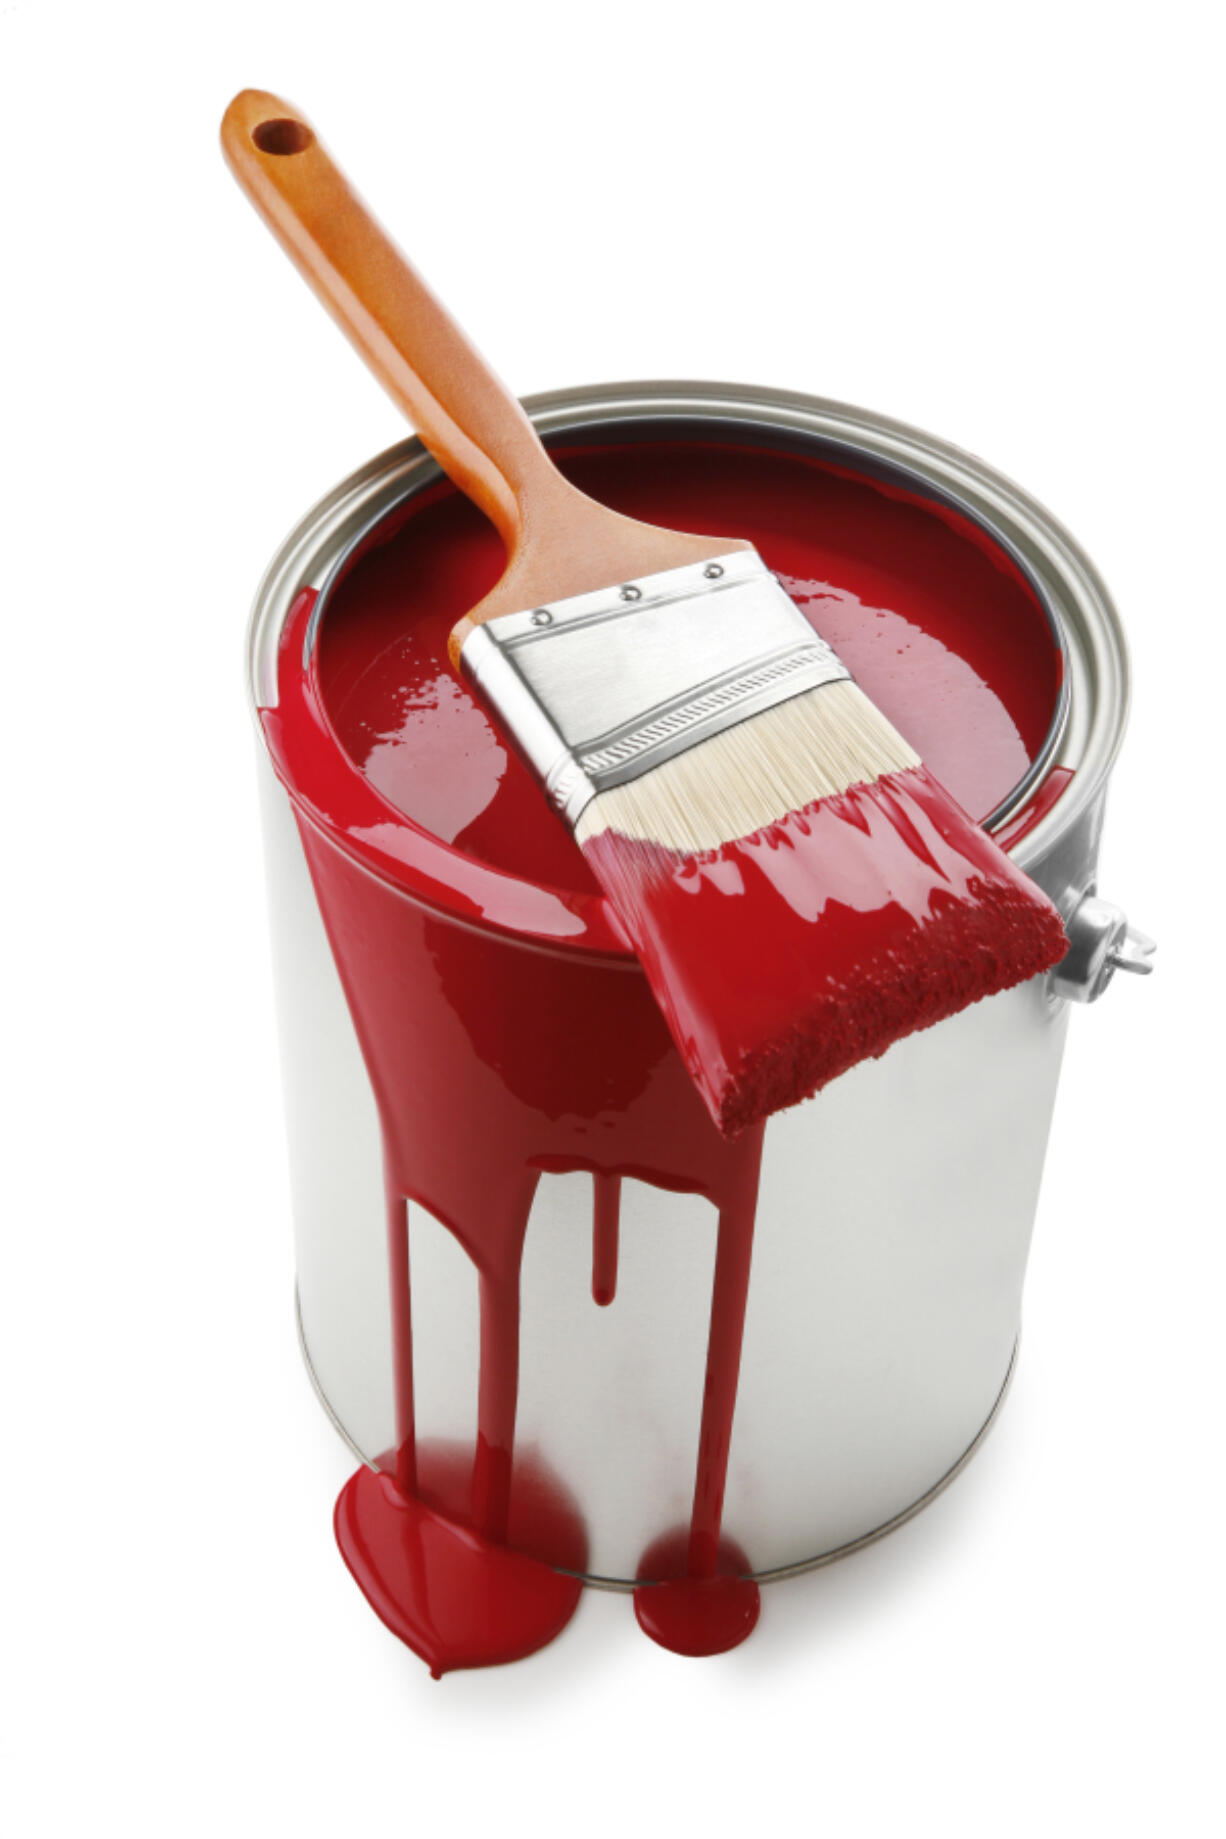 paint bucket with red paint and brush on white background.